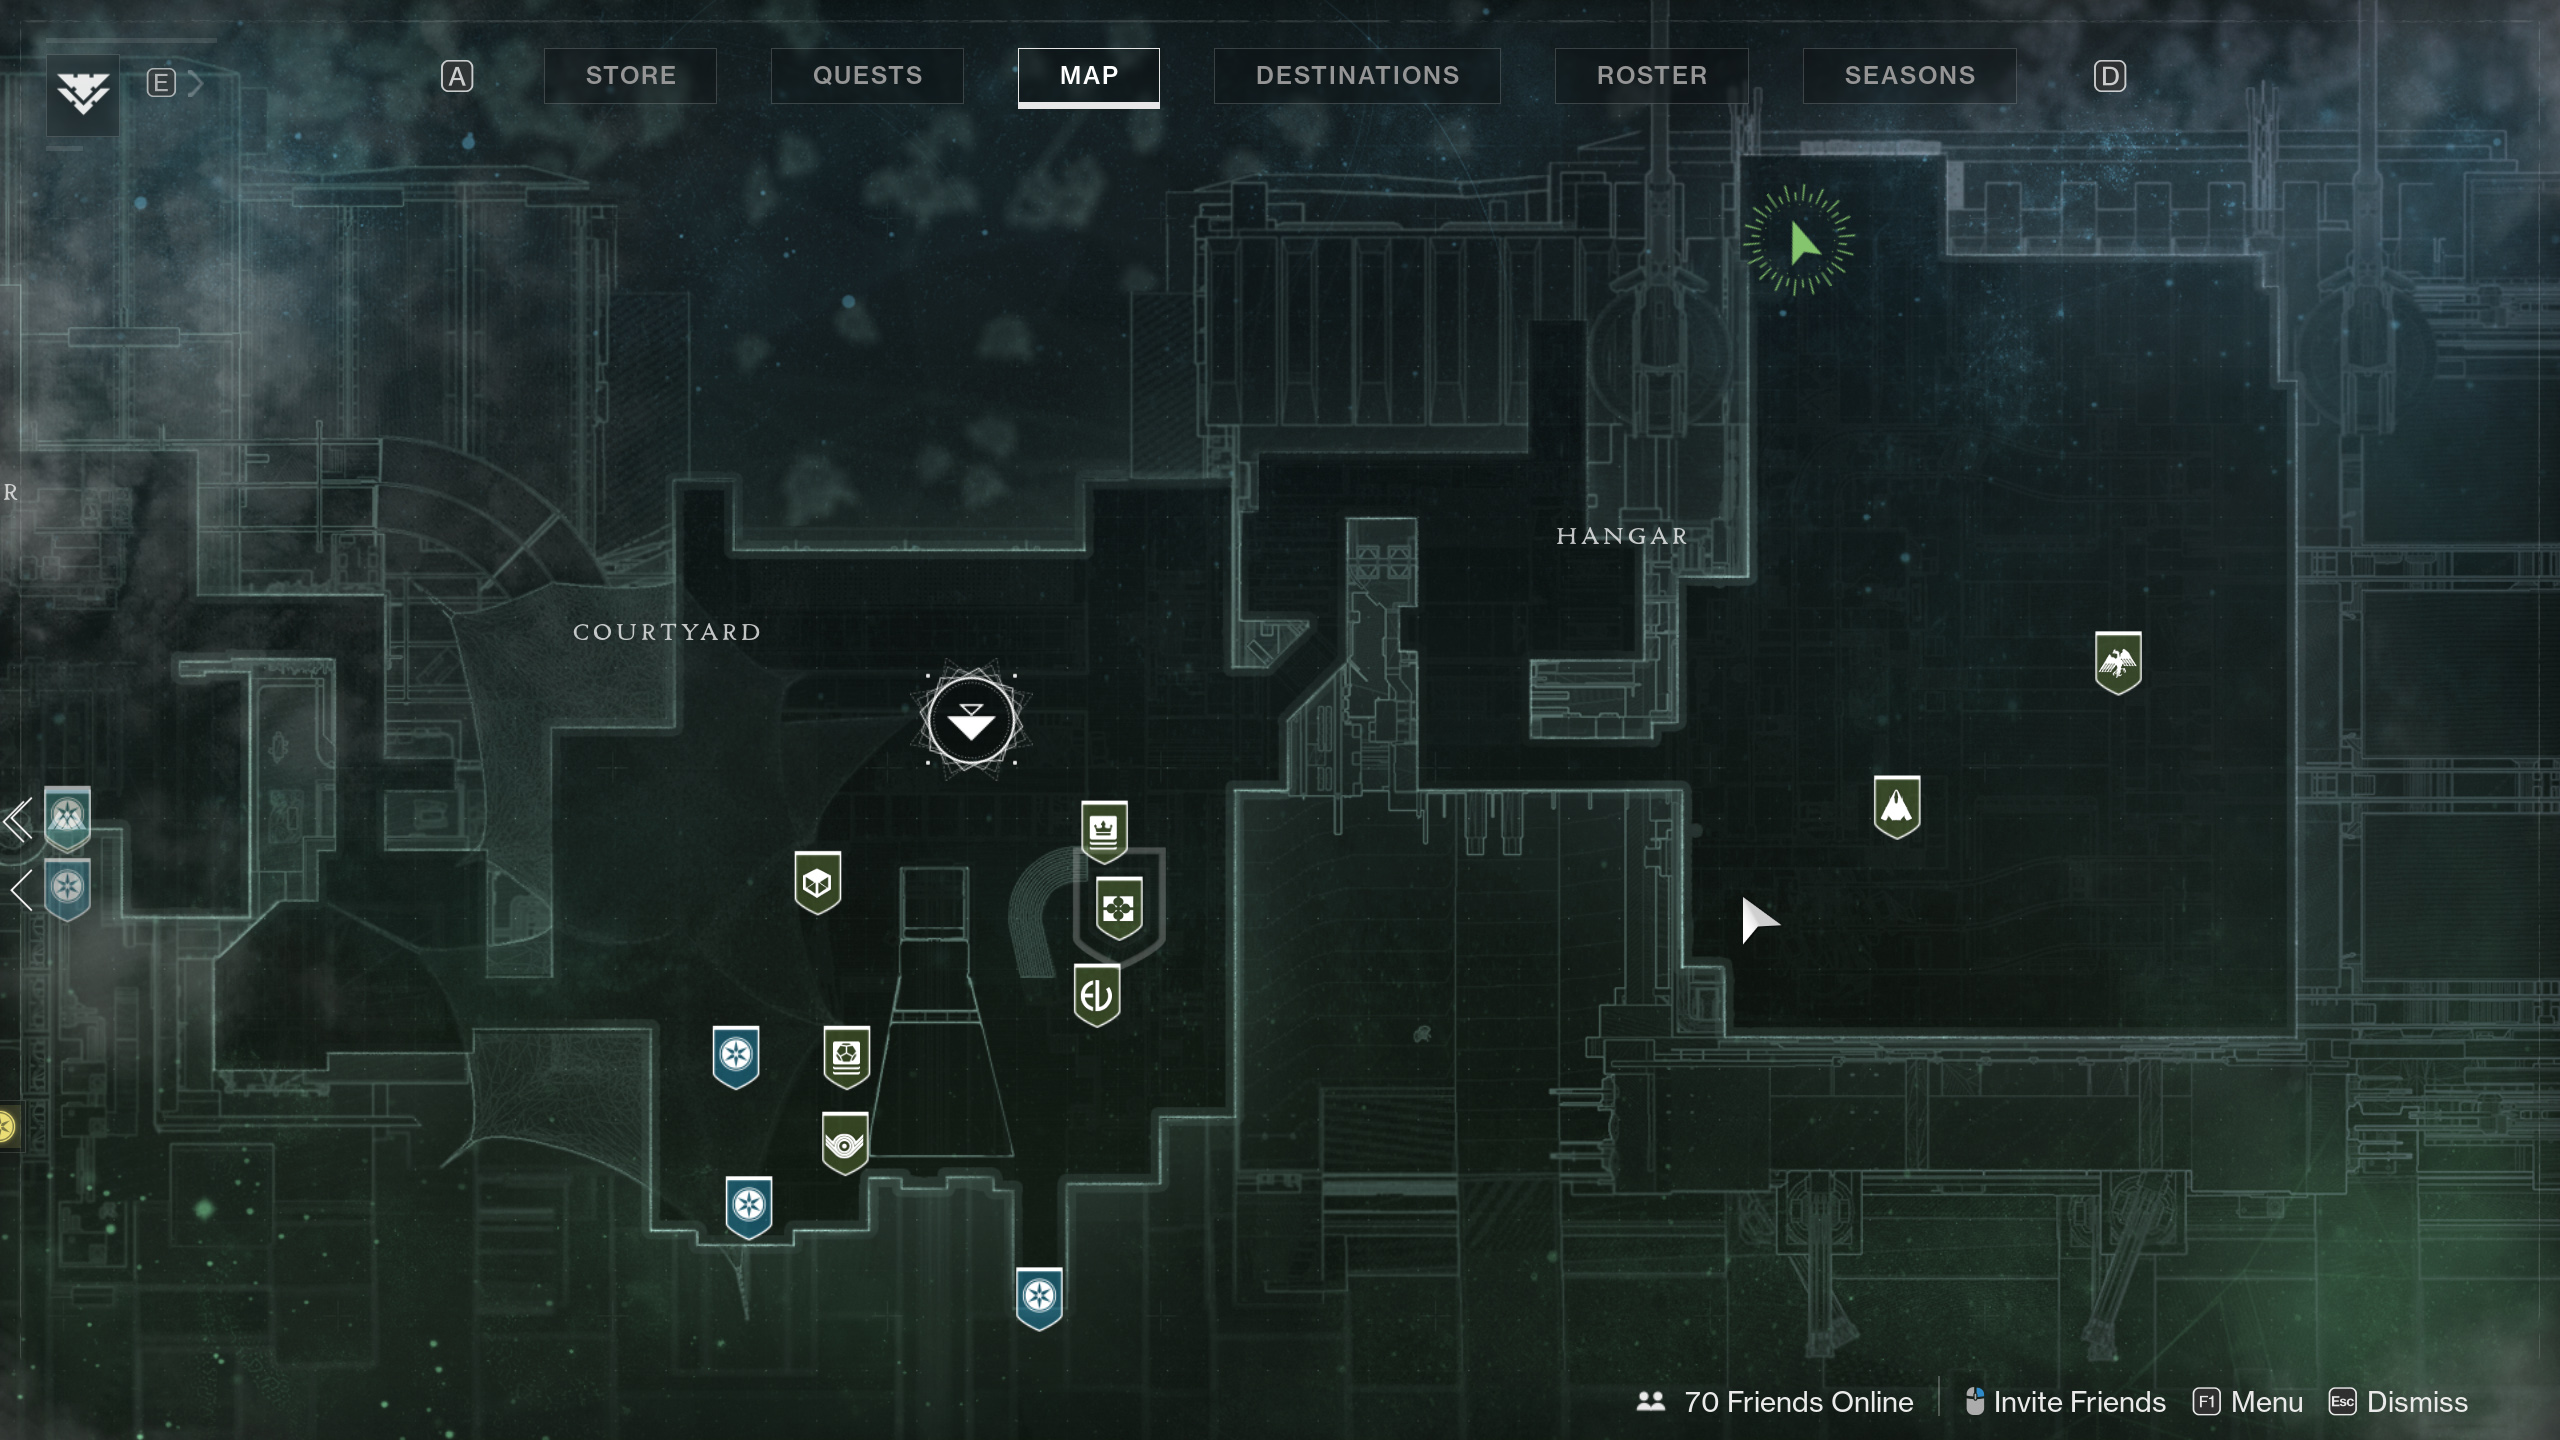 Xur's location and wares for March 26, 2021 - Destiny 2